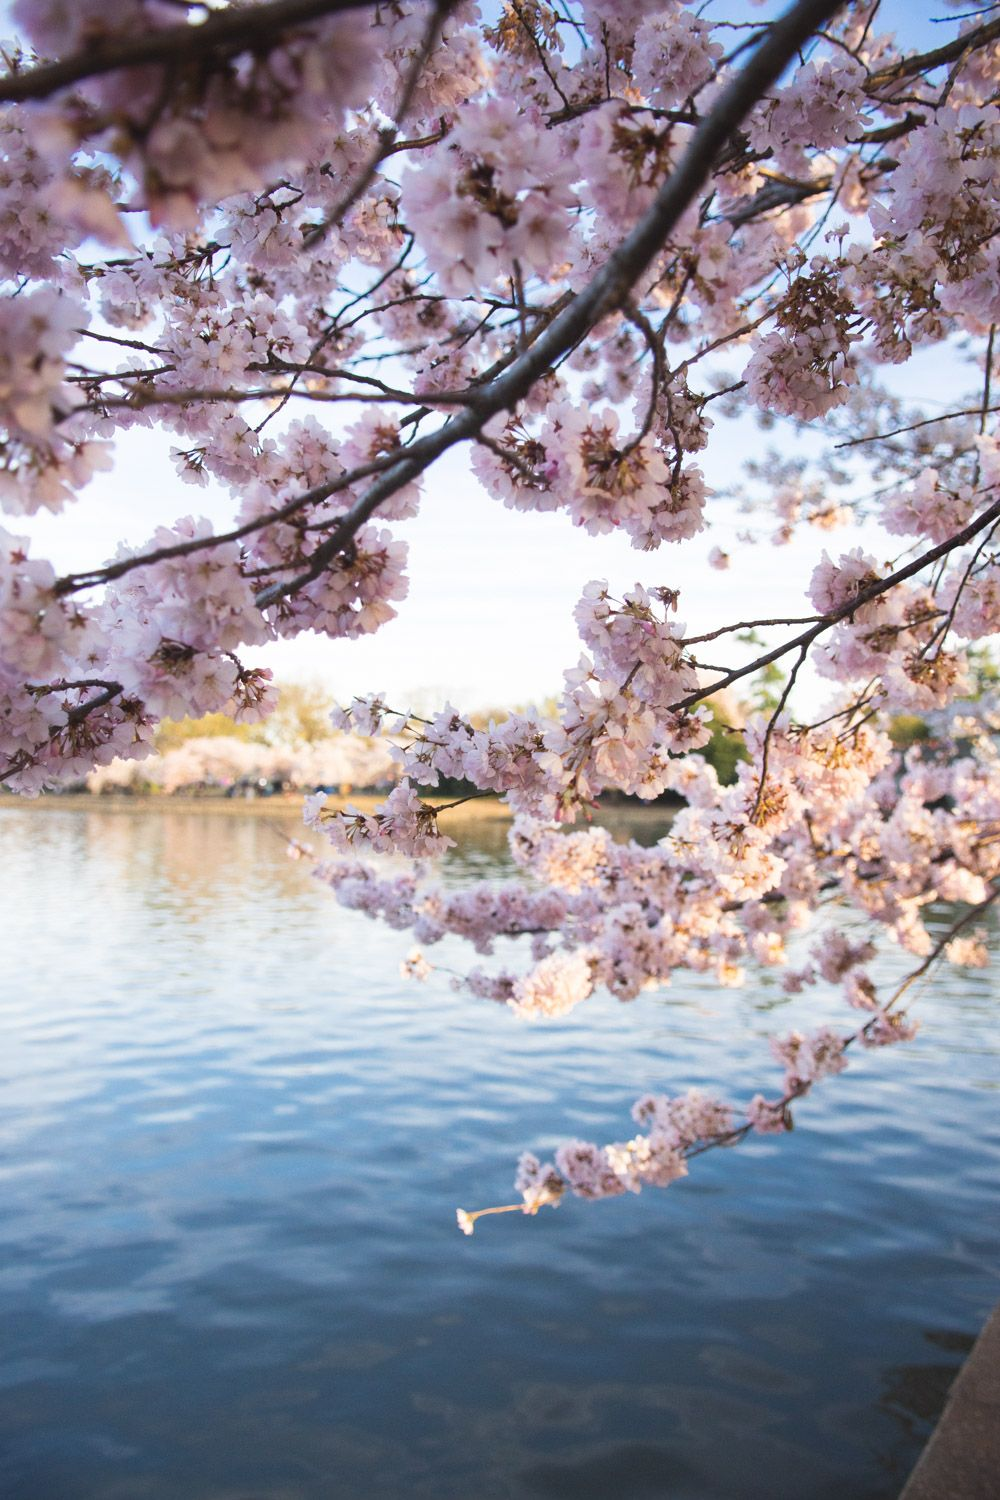 Cherry Blossom Festival Dc 2019 When To Expect Peak Bloom This Year Thrillis Cherry Blossom Festival Dc Cherry Blossom Pictures Cherry Blossom Washington Dc